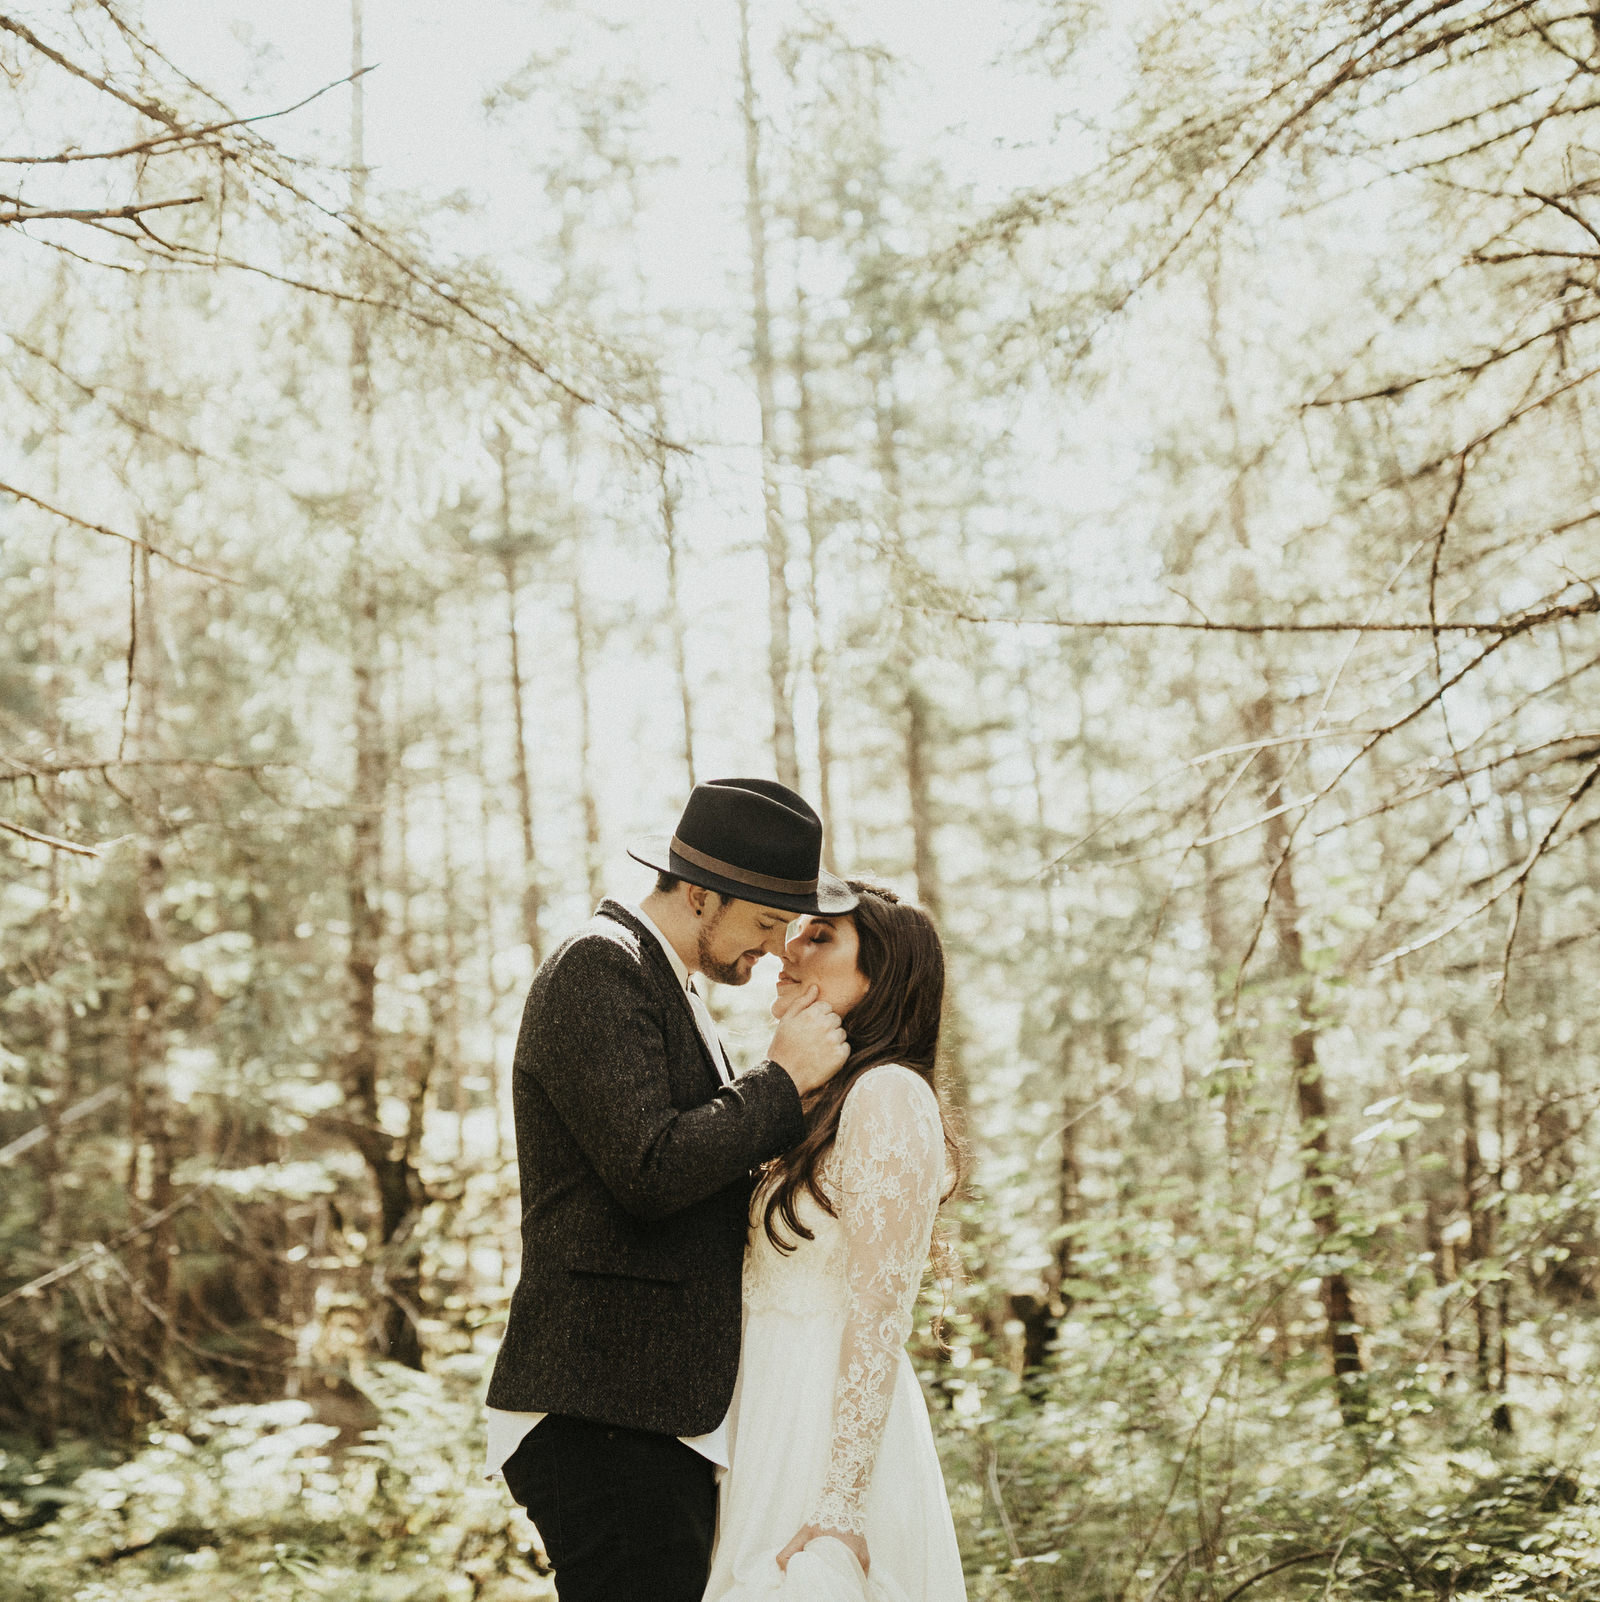 athena-and-camron-alaska-elopement-wedding-inspiration-india-earl-athena-grace-glacier-lagoon-wedding32